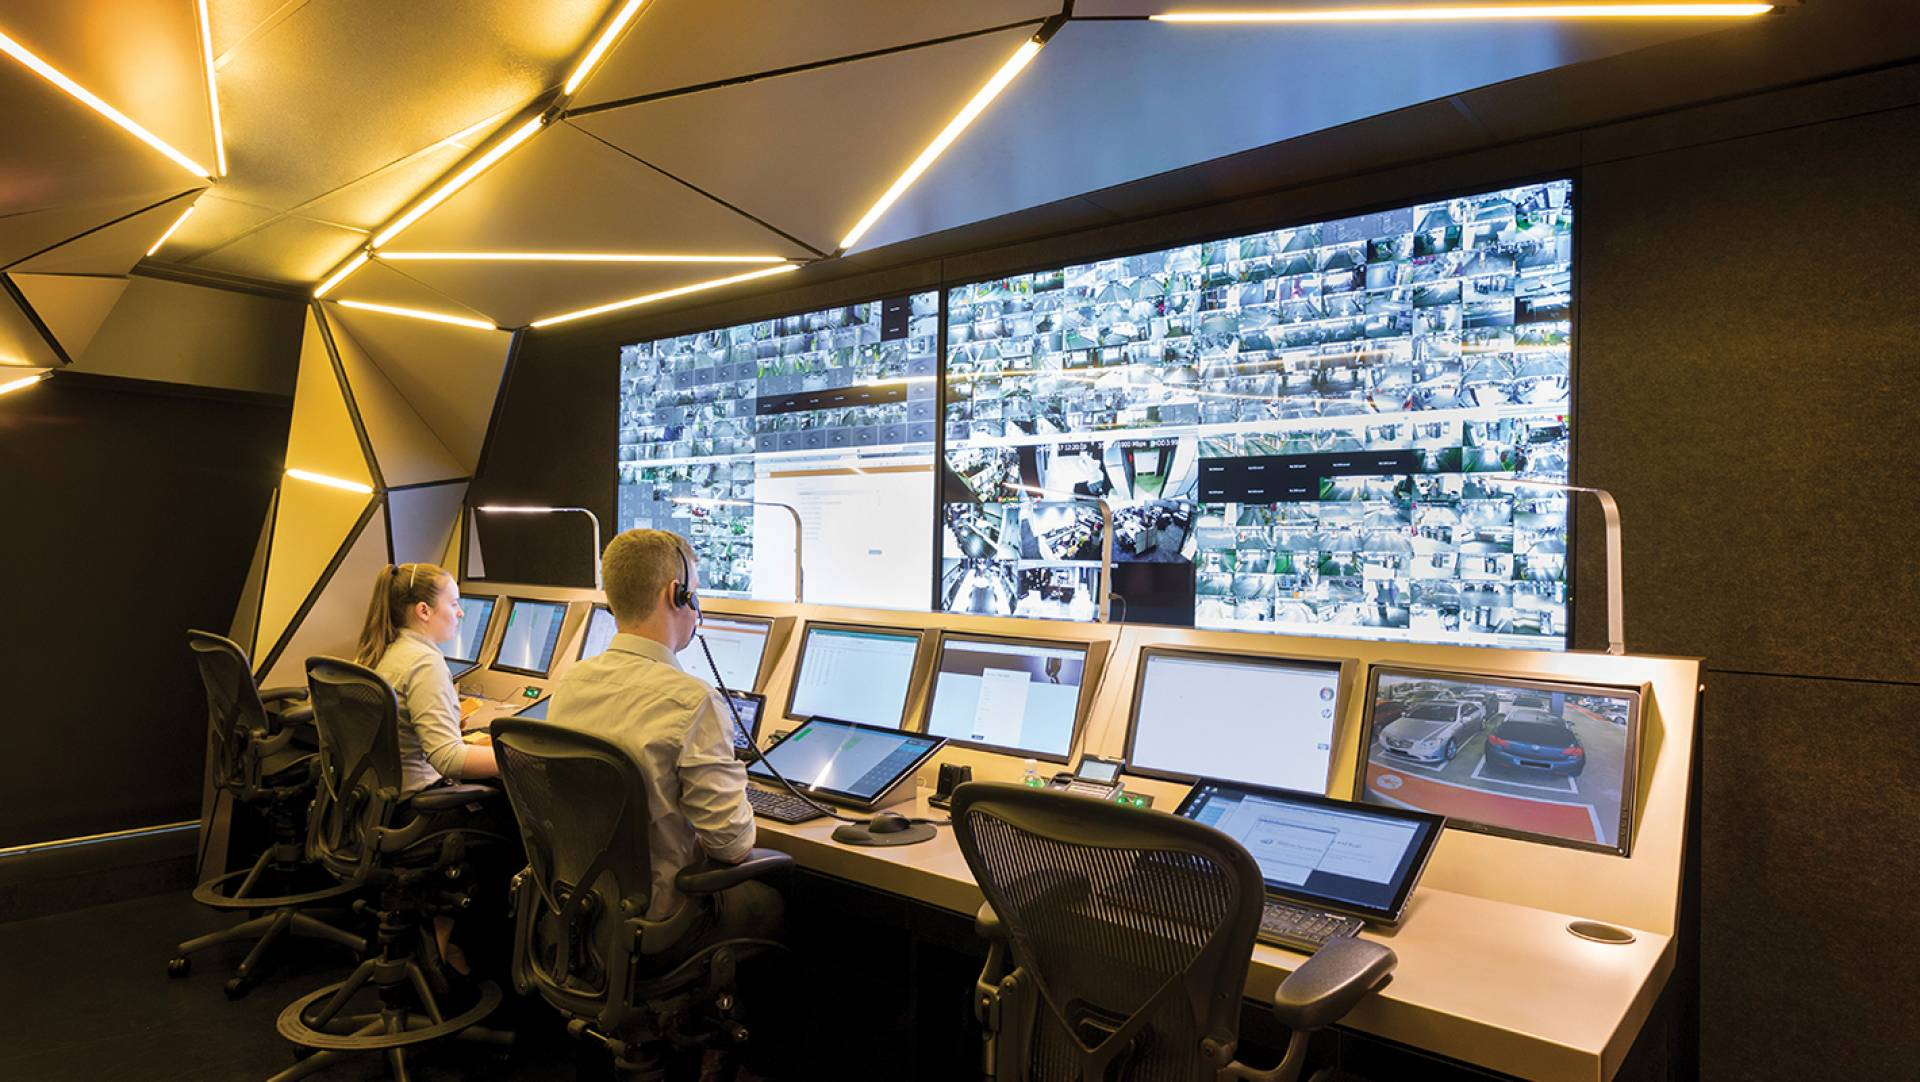 Office Fit Out & Control Room Design Melbourne - Technology Integration & Delivery